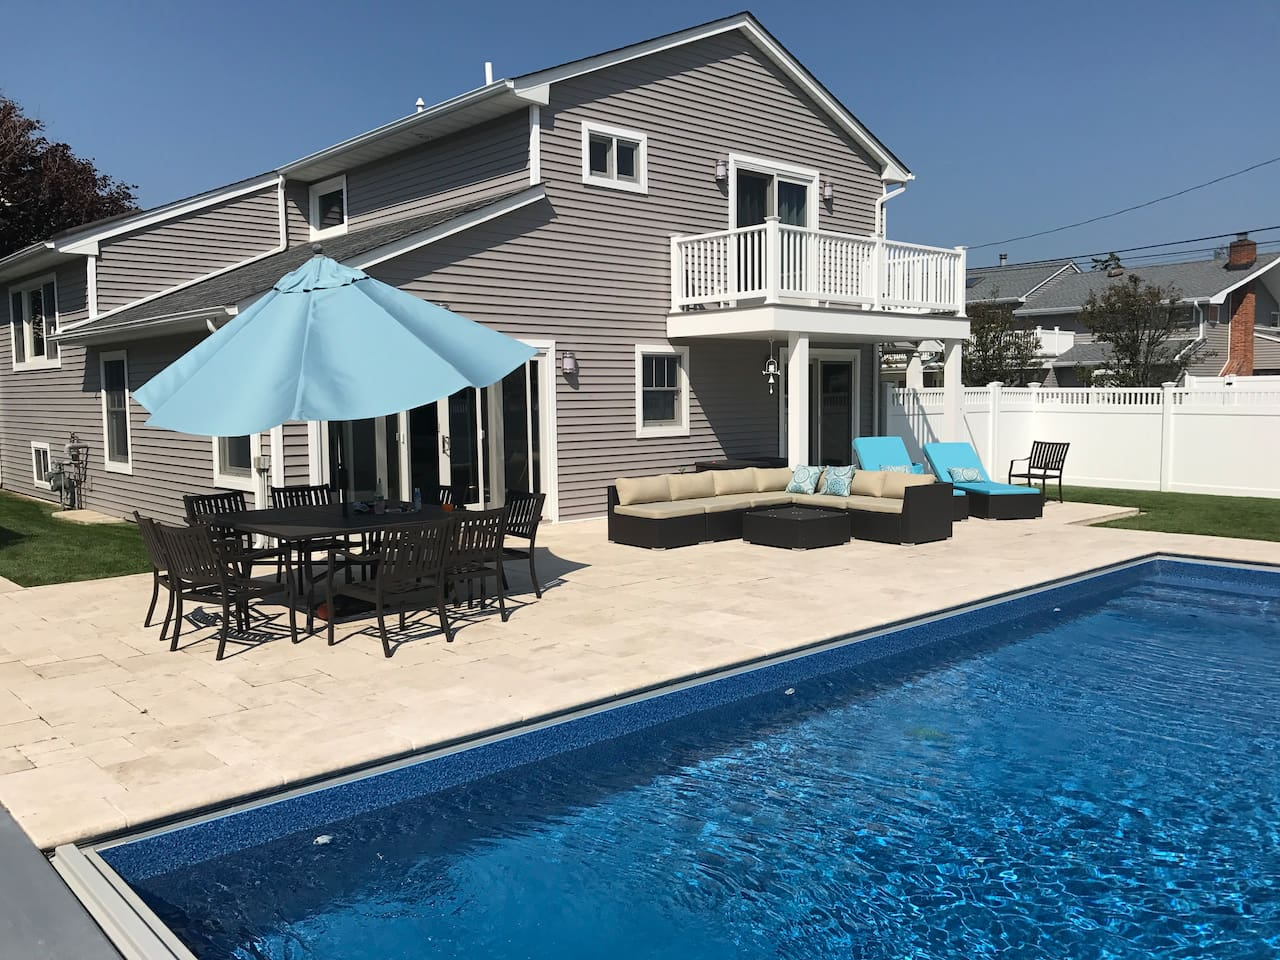 Heated in-ground pool surrounded by new patio, plenty of seating and lounging options